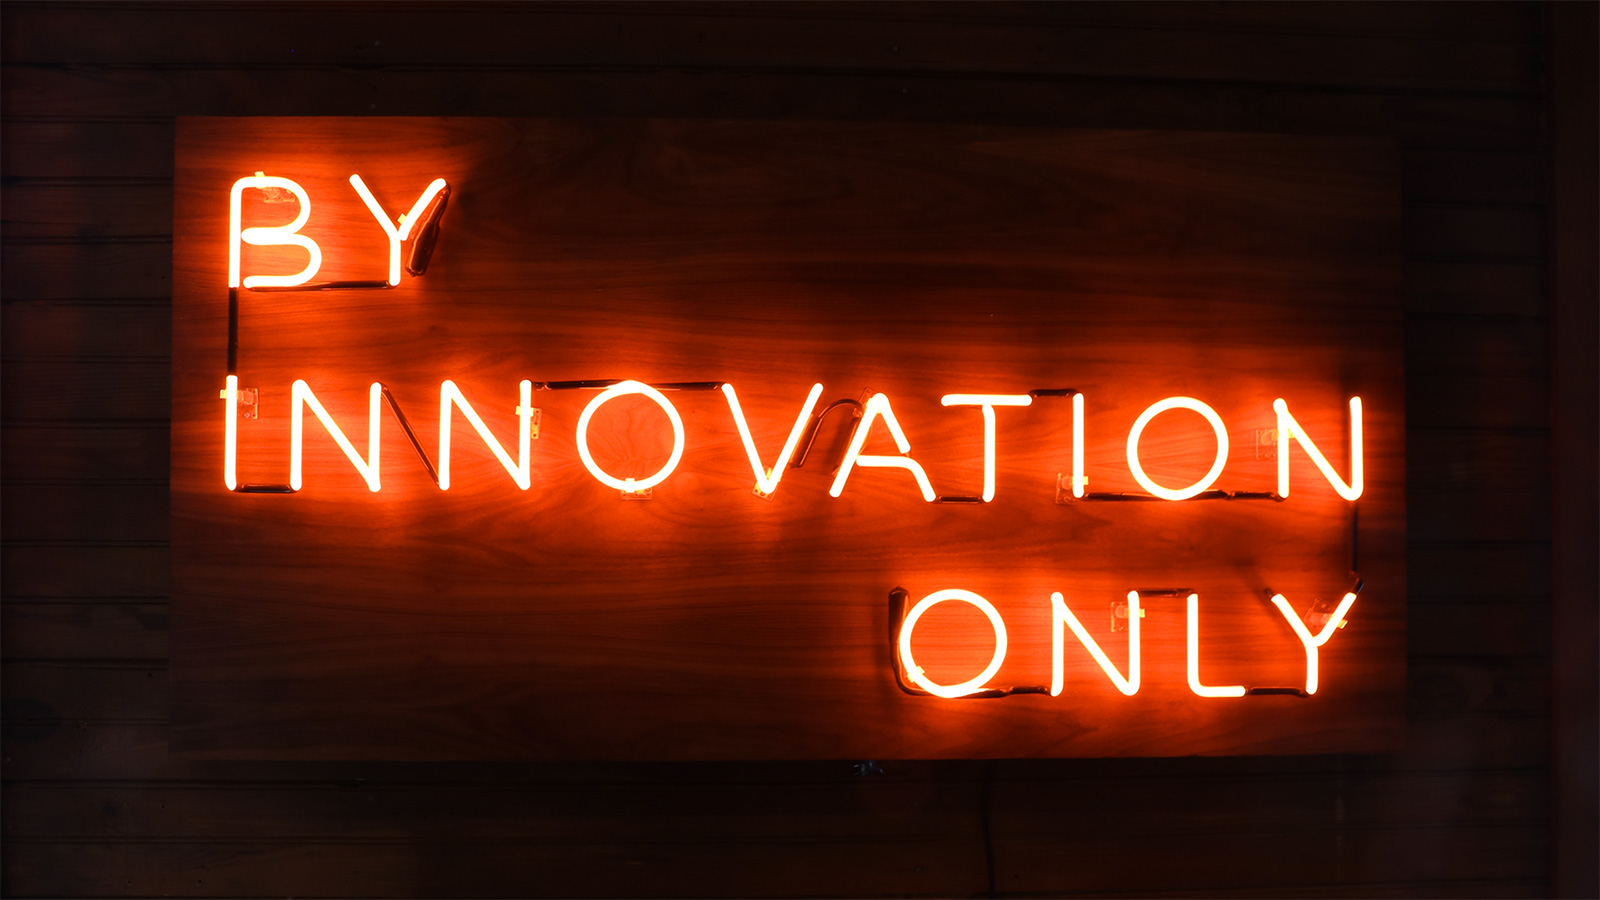 by-innovation-only-neon-sign